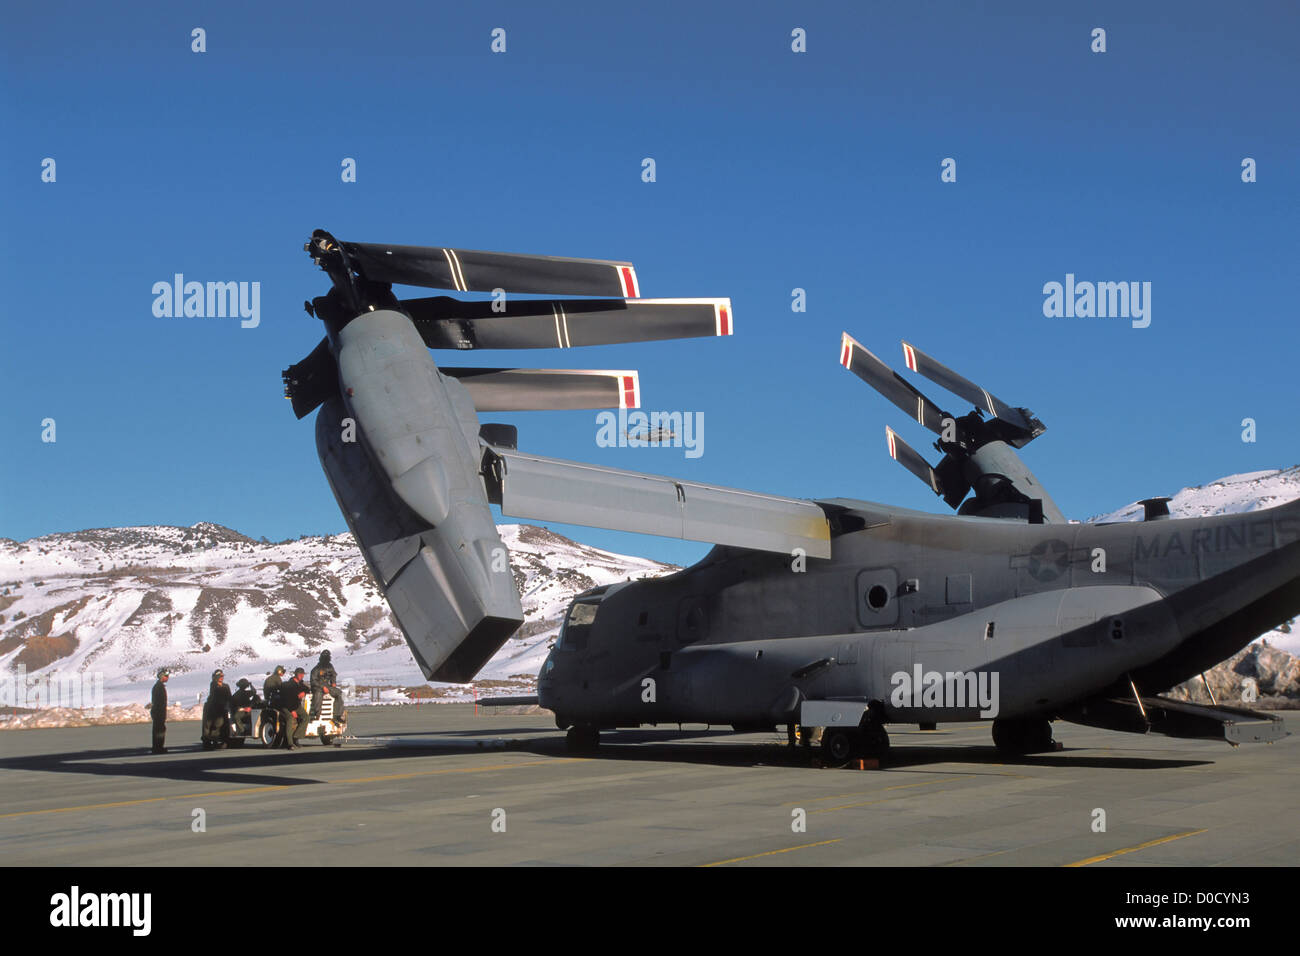 V-22 Osprey Rotates Its Wing After Folding Its Rotor Blades - Stock Image